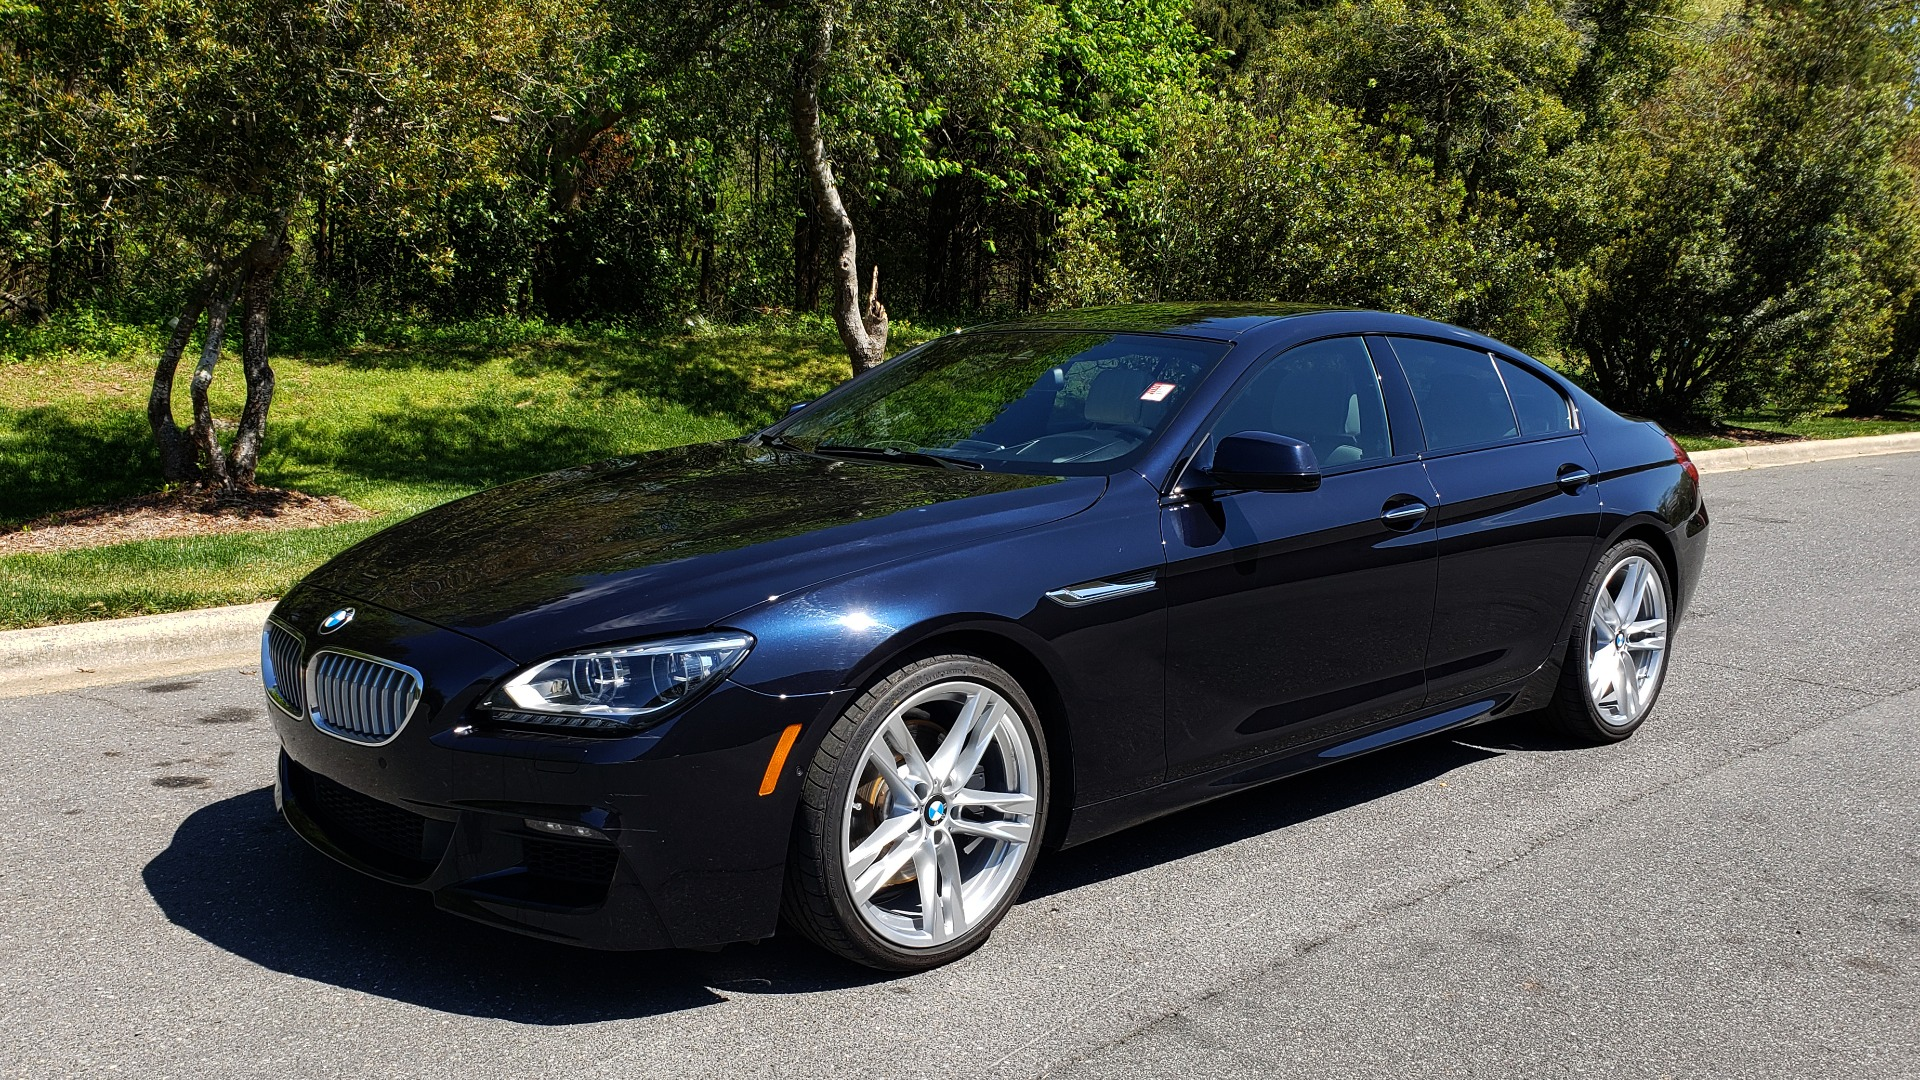 Used 2015 BMW 6 SERIES 650I GRANCOUPE M-SPORT / EXEC / DRVR ASST PLUS / LIGHTING for sale Sold at Formula Imports in Charlotte NC 28227 1